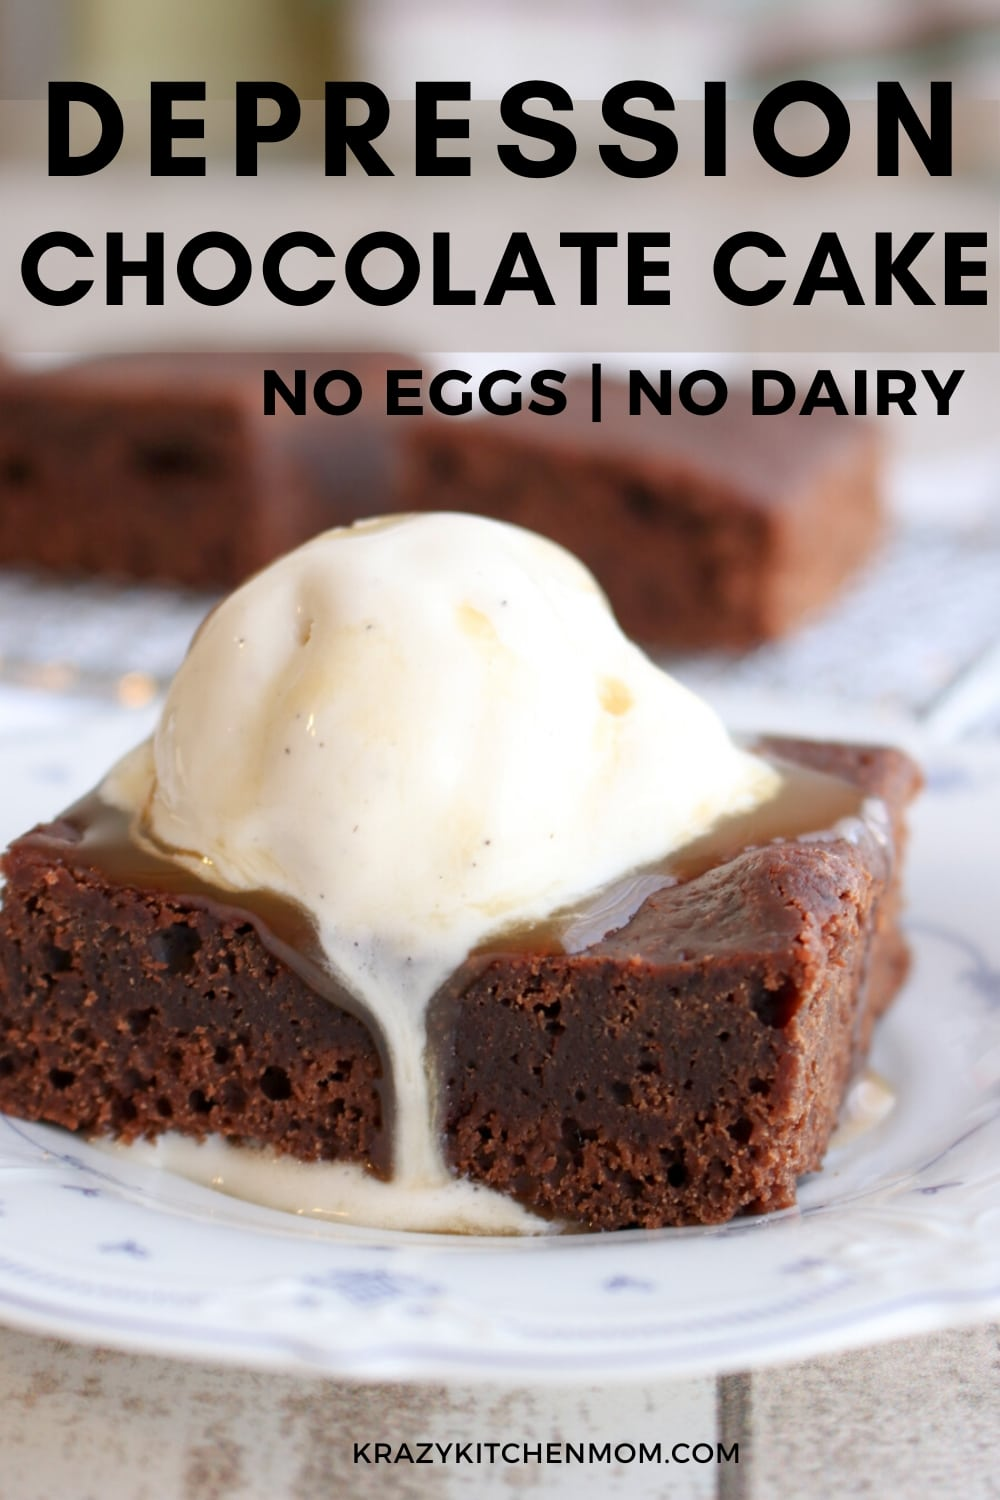 Depression Chocolate Cake is also called Wacky Cake, Crazy Cake, and Three-holed cake. It's a rich chocolate cake that is made without using butter, eggs or milk. It's the perfect dessert for anyone on a dairy-free diet or a vegan diet. via @krazykitchenmom